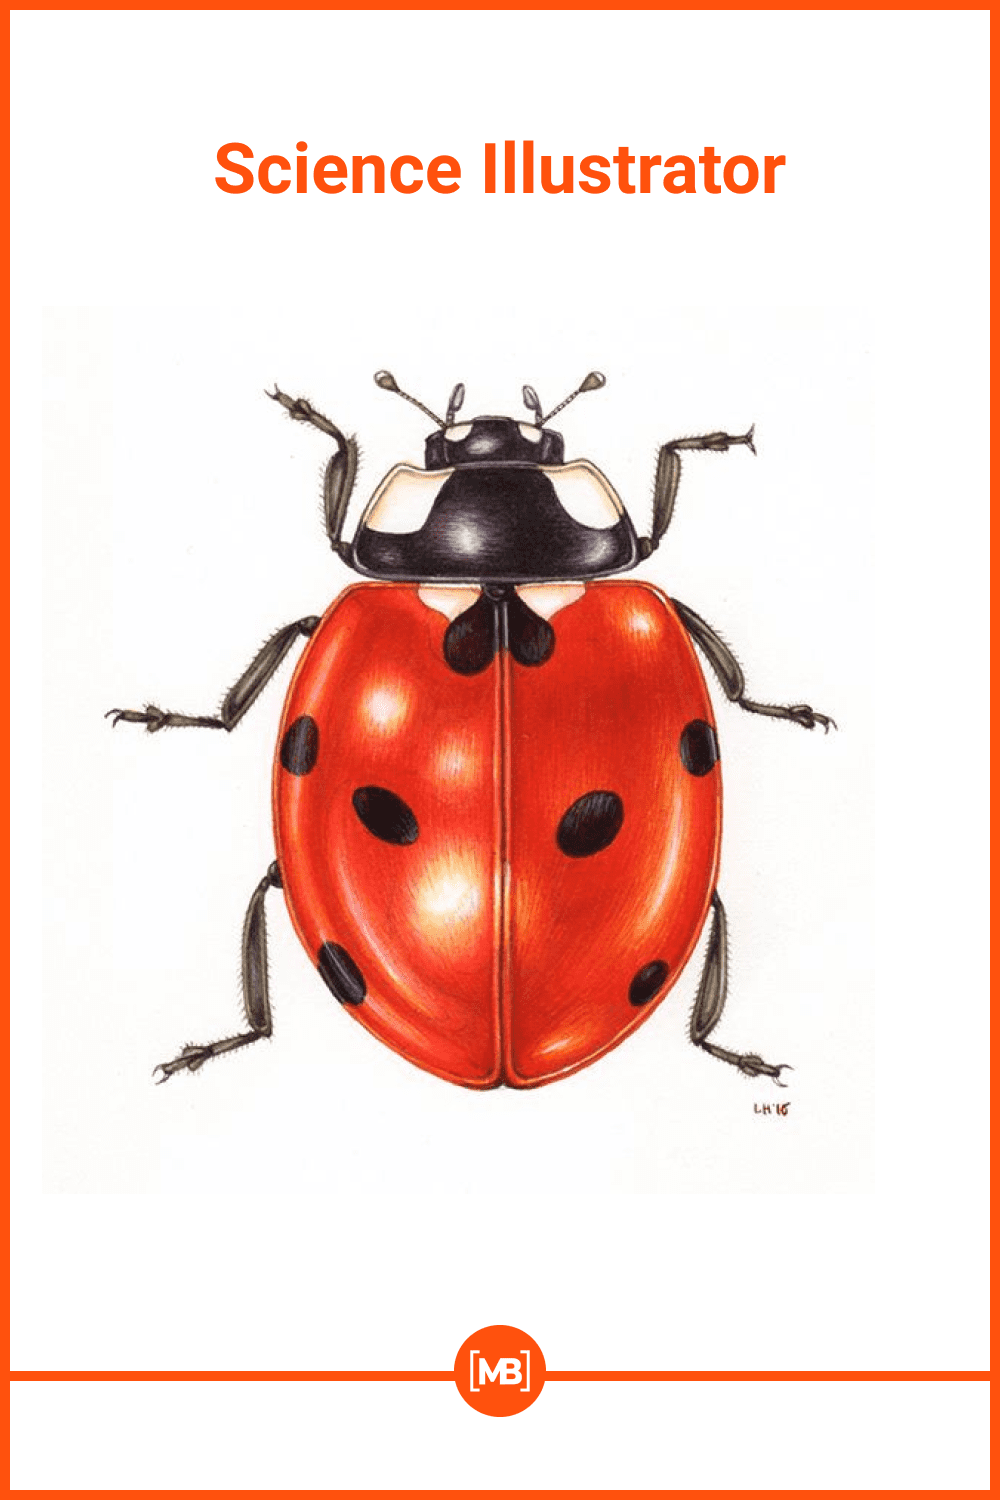 Ladybug in hers classic form.